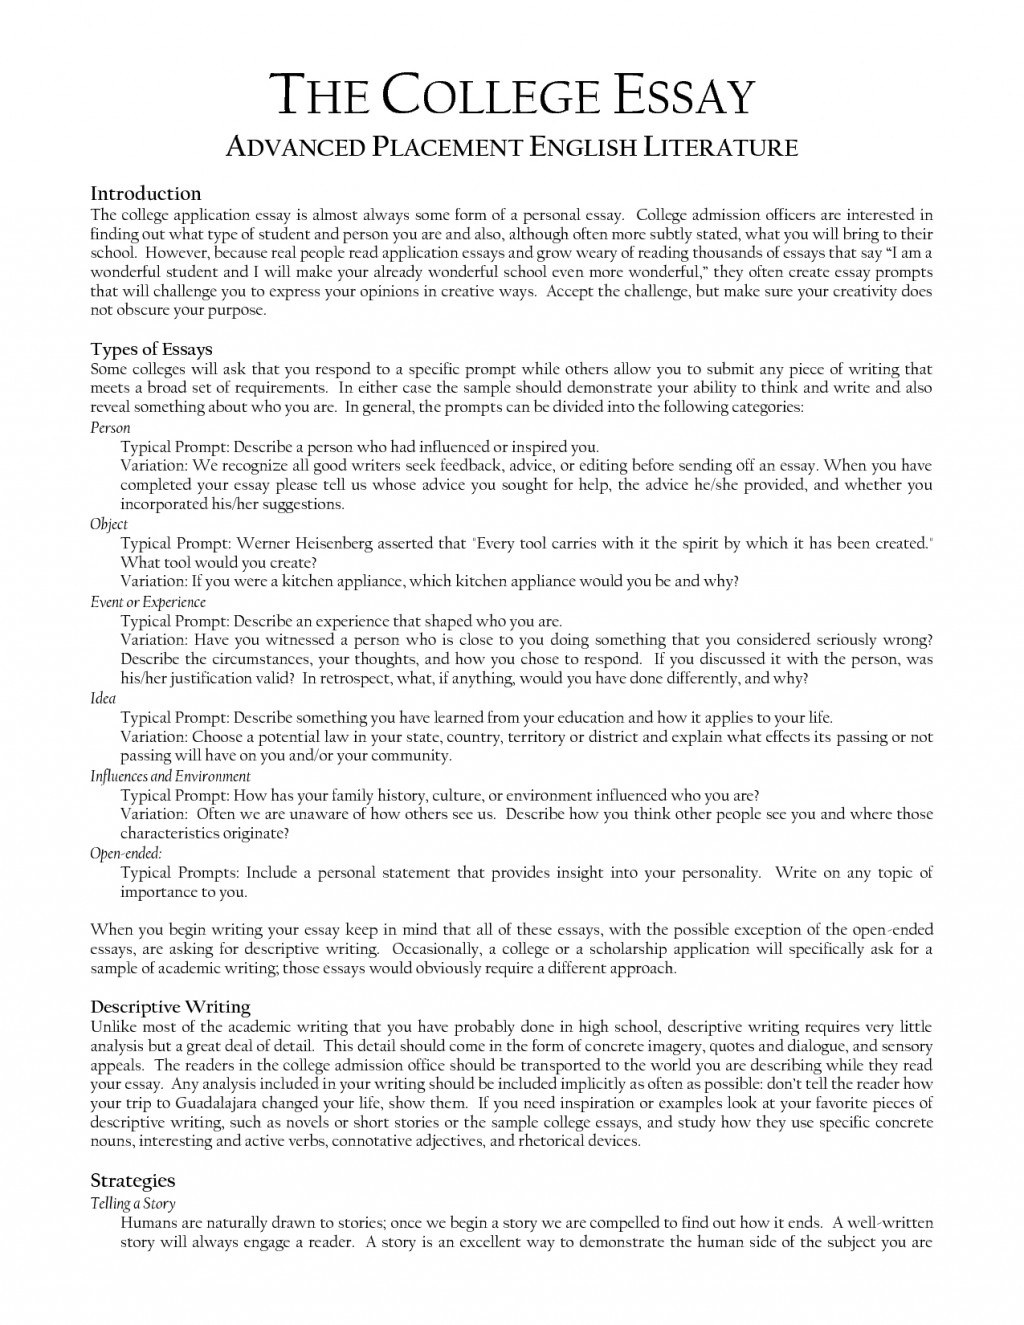 011 Essay Example John Hopkins Essays That Worked Good College Examples Writings And About Sports Format Asli Aetherair Apply Texas Stanford Reddit Johns Topic Singular 2020 2021 2018 Large